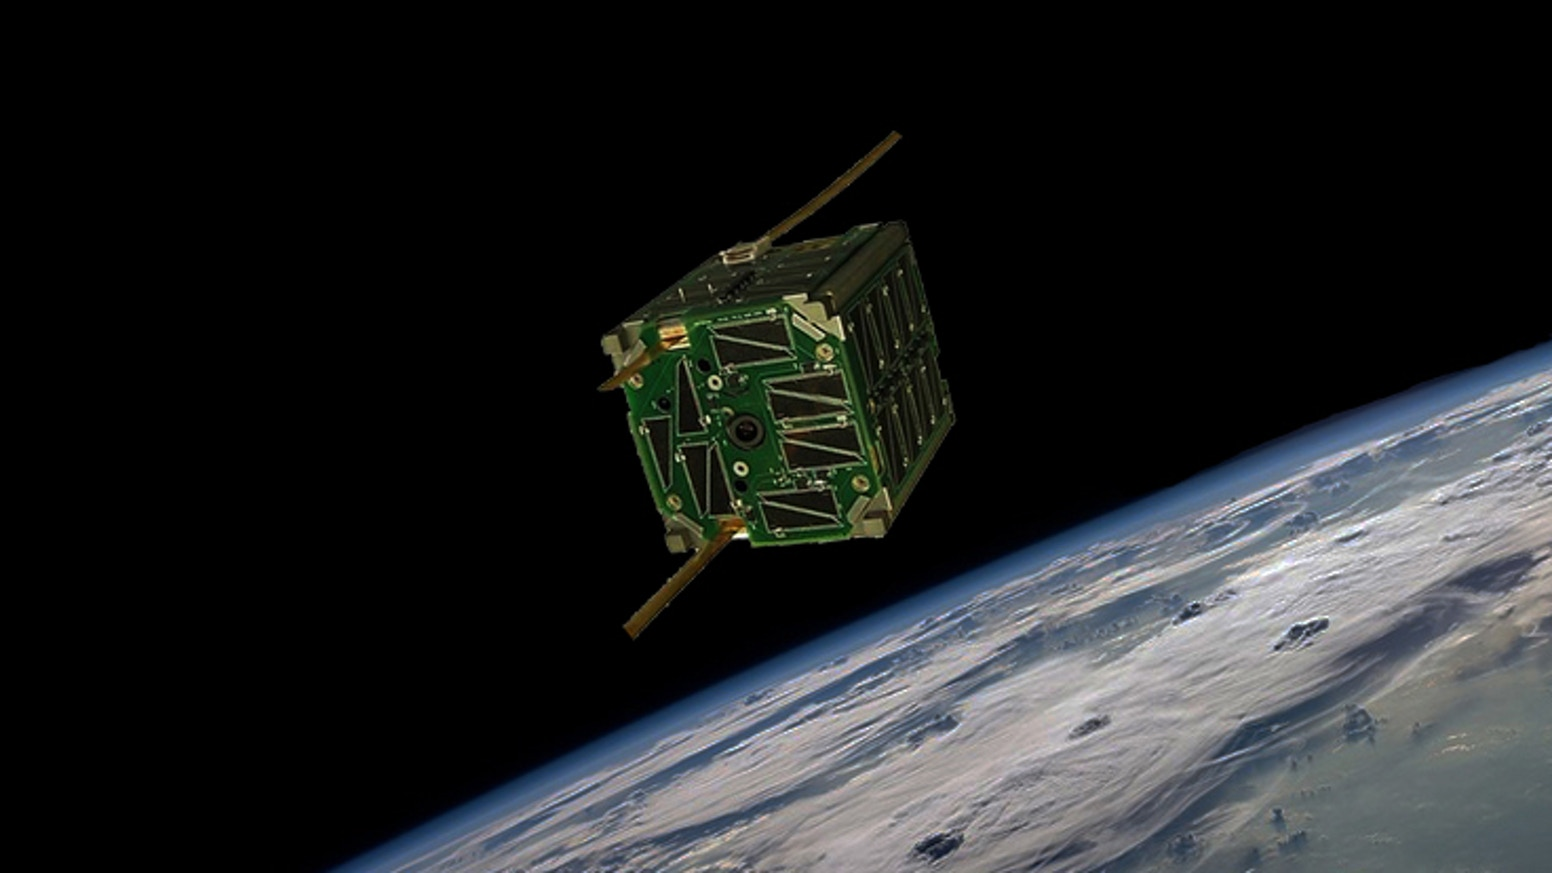 The First satellite for UFO research. We intend to search low-Earth Orbit for any sign of a real UFO, or any space anomaly.